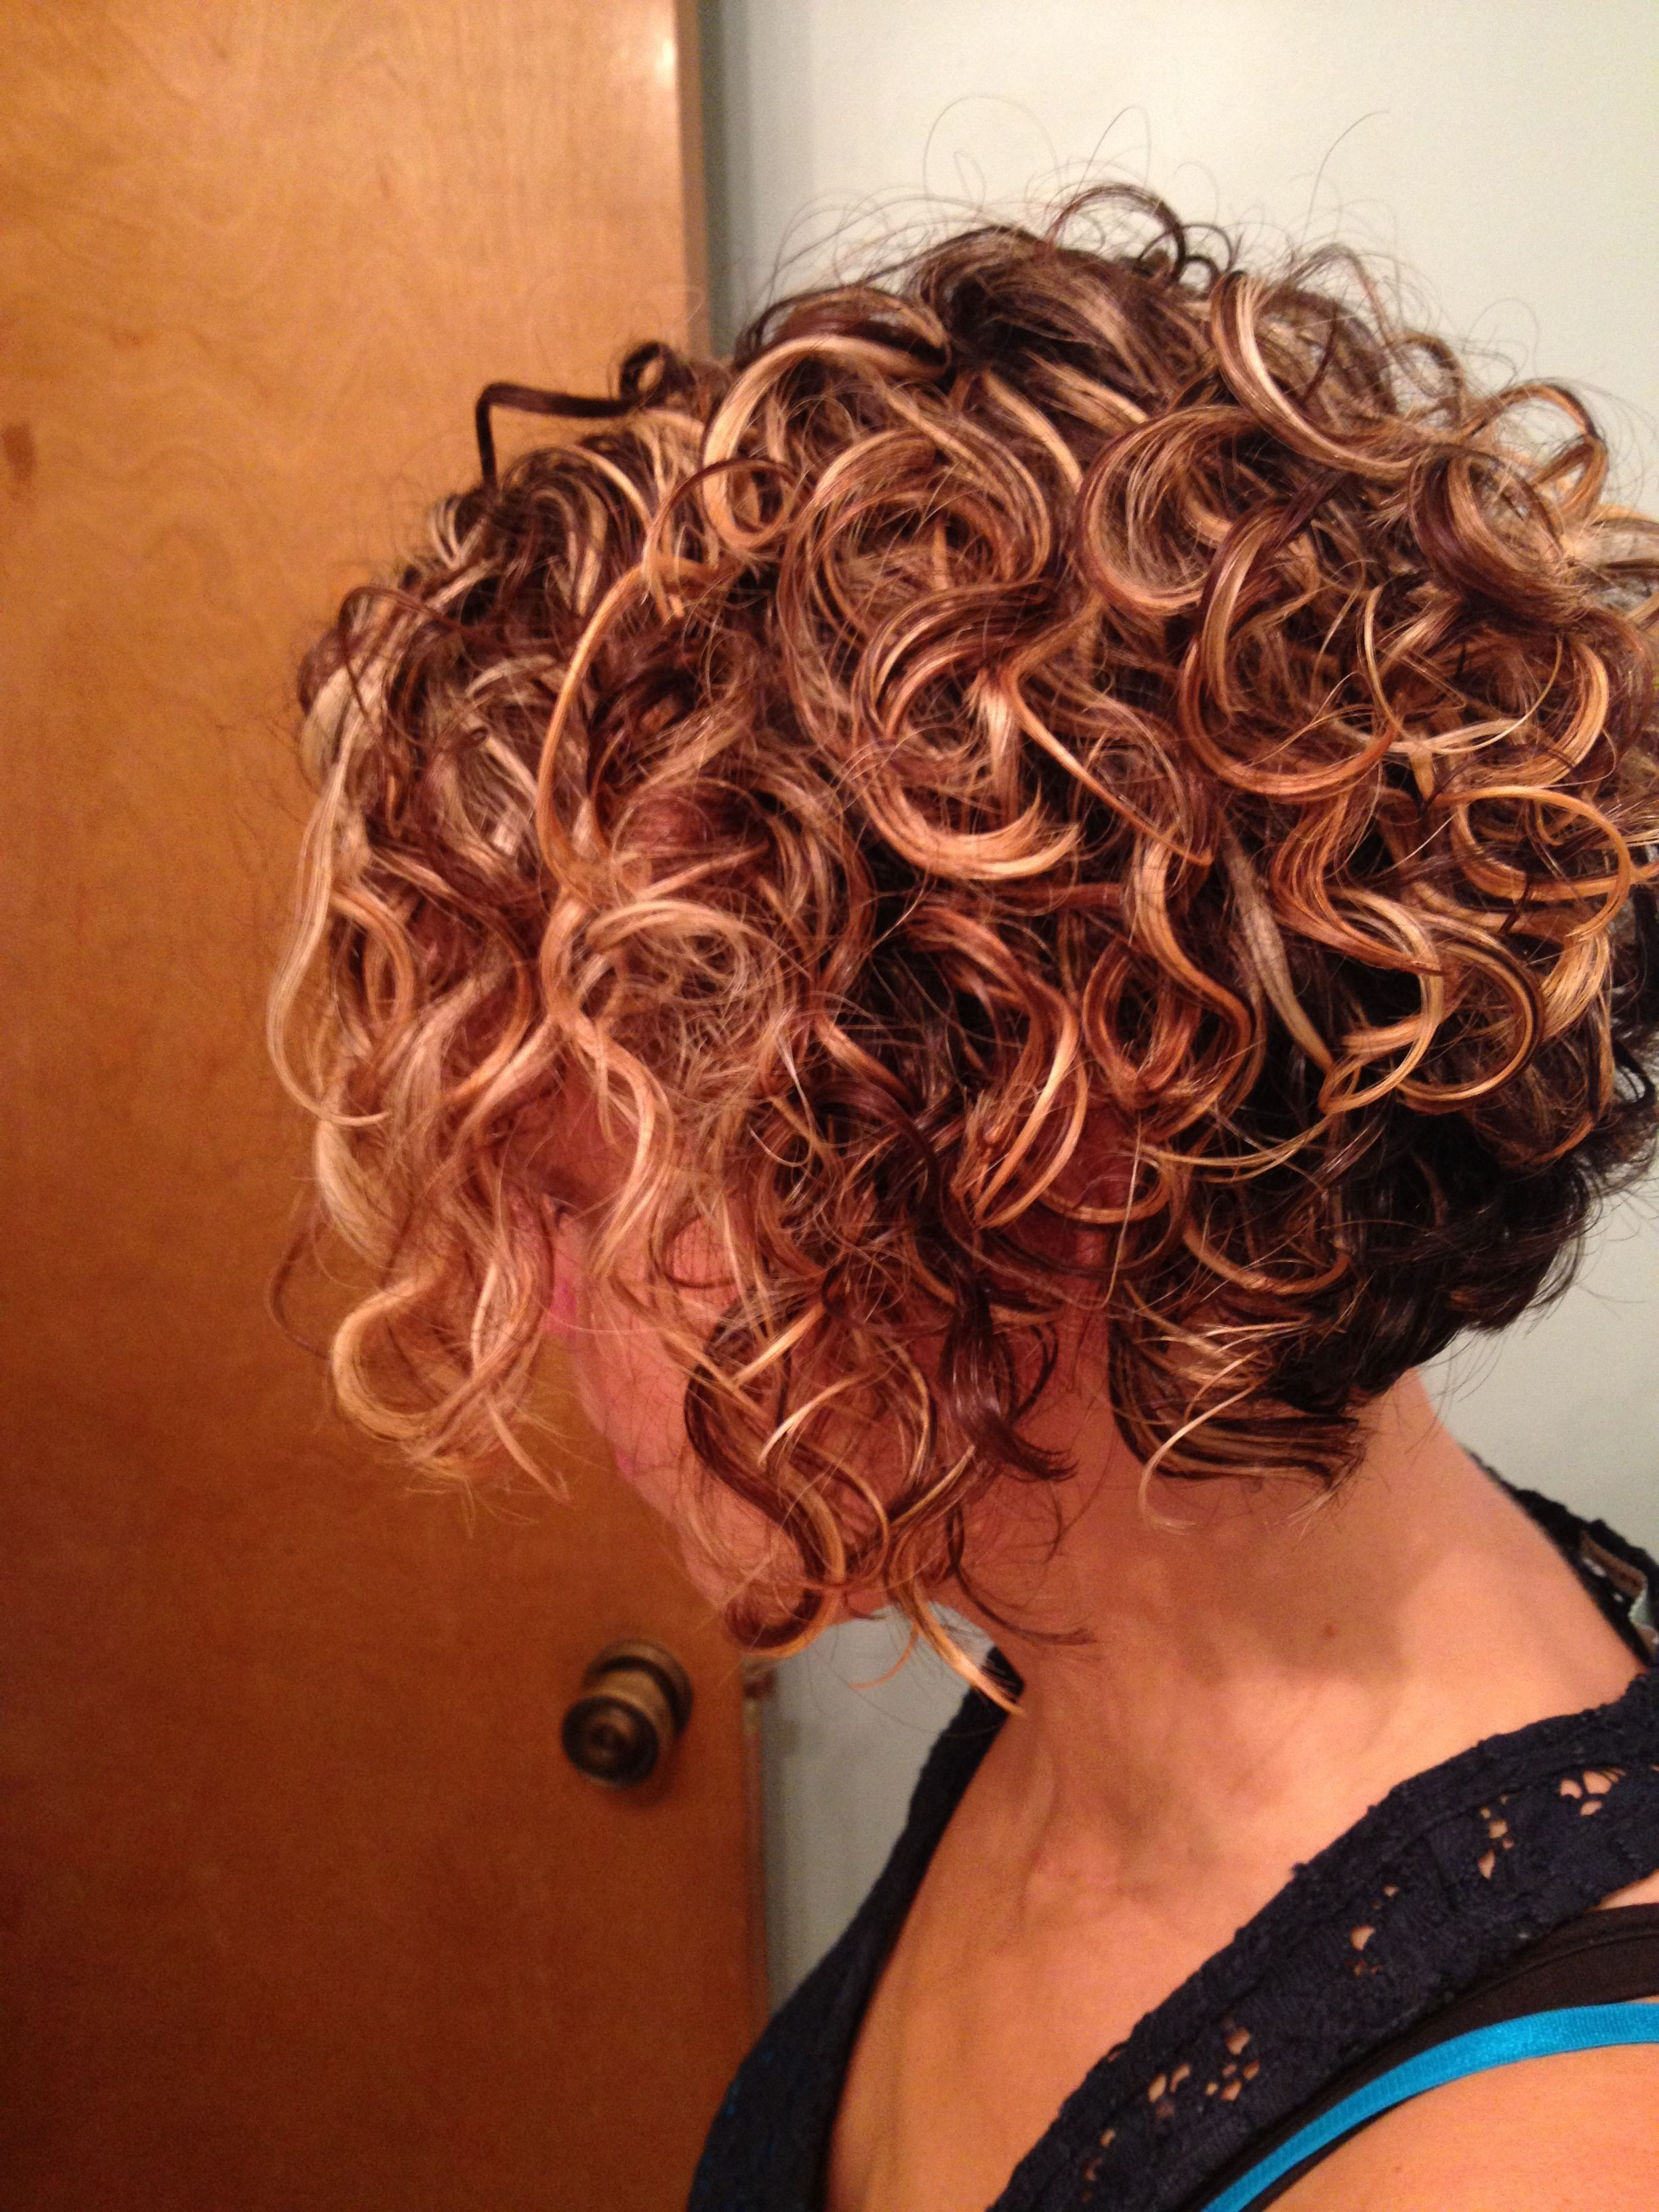 25 Lively Short Haircuts For Curly Hair – Short Wavy Curly Hairstyle Pertaining To Playful Blonde Curls Hairstyles (View 2 of 20)